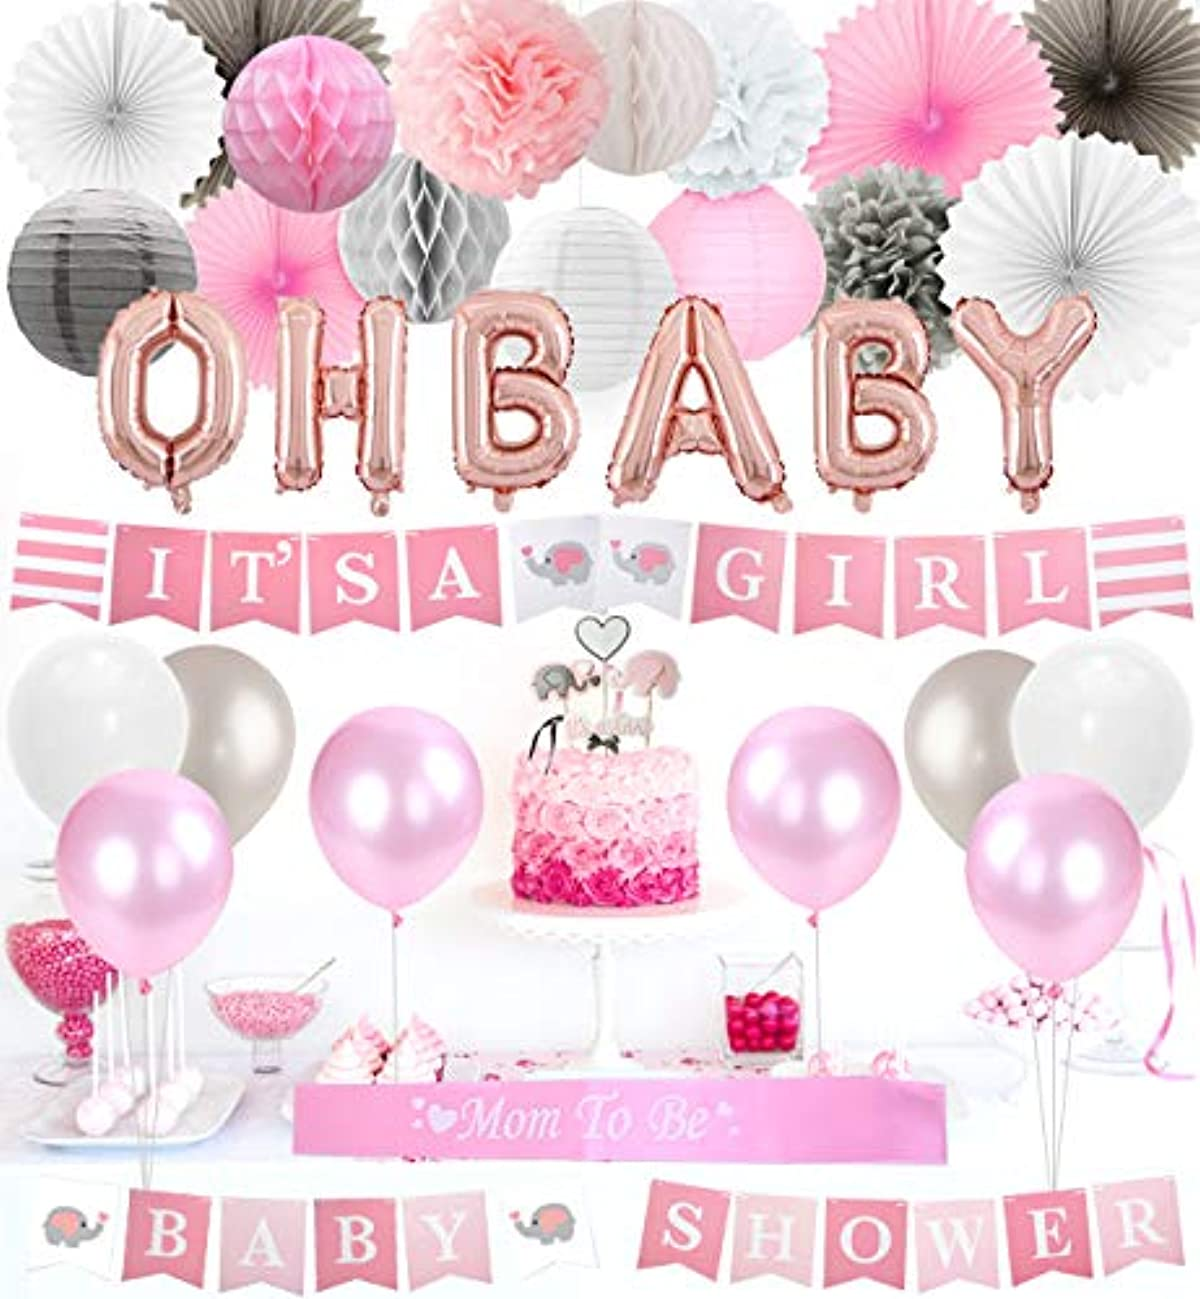 Baby Shower Decorations for Girls Elephant Theme Pink and Gray, It's a Girl Baby Shower Banner, Cake Toppers, Paper Pom Poms Fans and Balloons Set